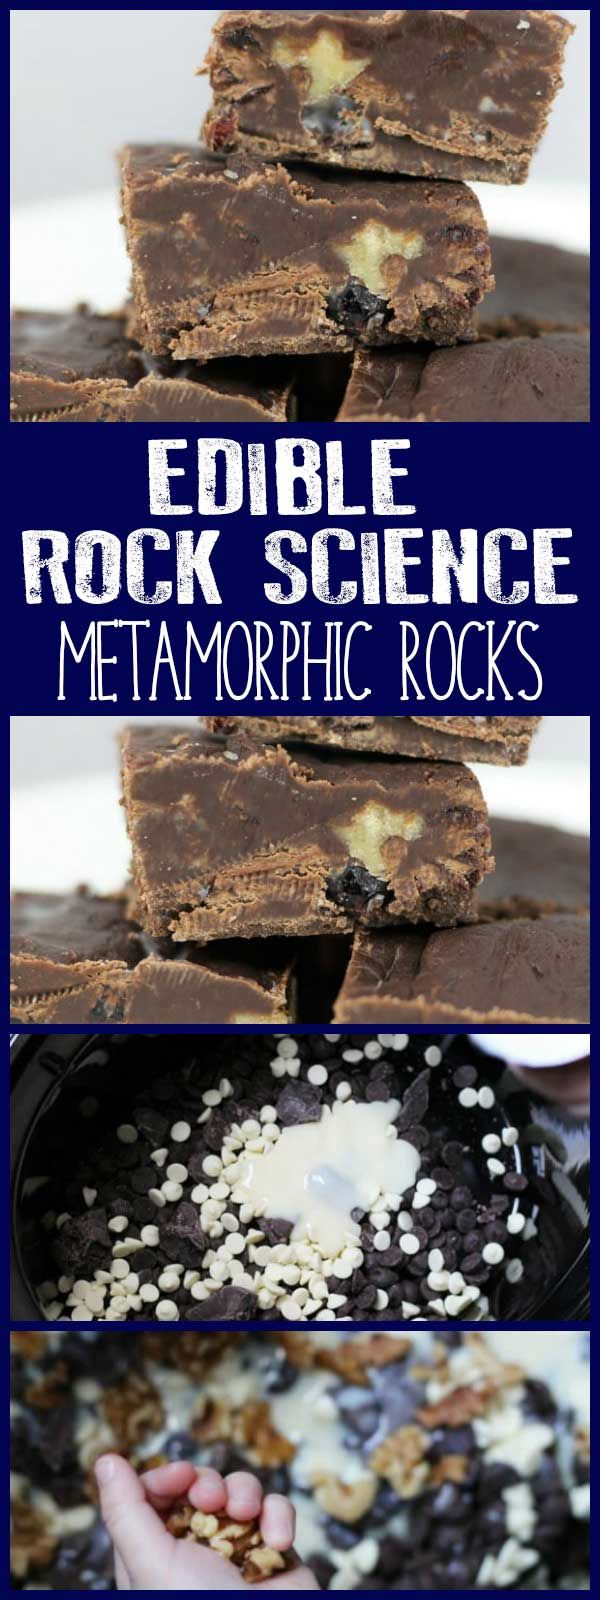 An edible science experiment to make Slow Cooker Walnut and Cranberry Fudge as an example of how Metamorphic Rocks are formed in the rock cycle. #stem #science #rockcycle #education #fudgerecipe #slowcookerfudge #rainydaymum via @rainydaymum